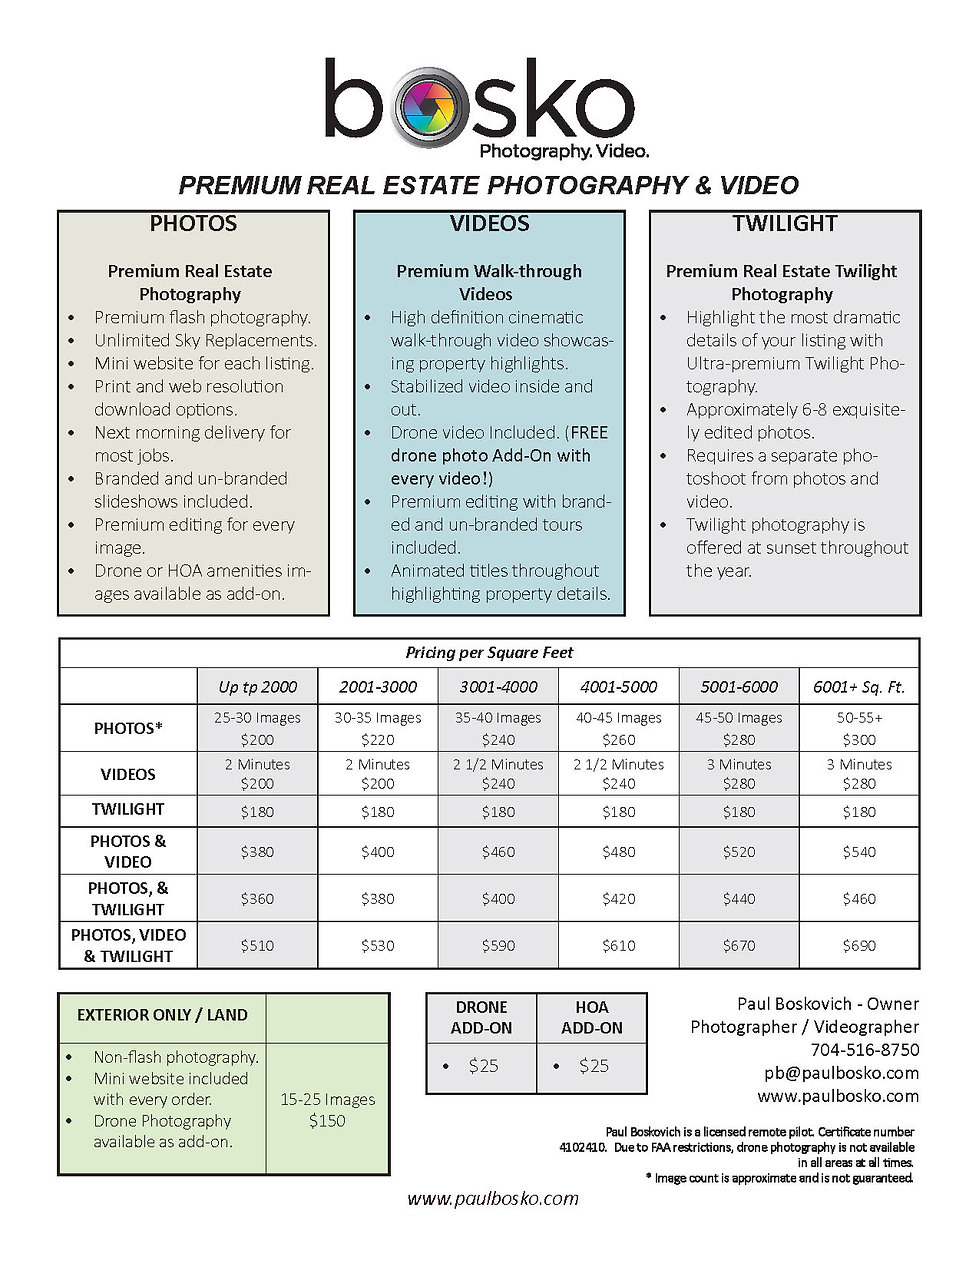 Real Estate Photography & Video Pricing